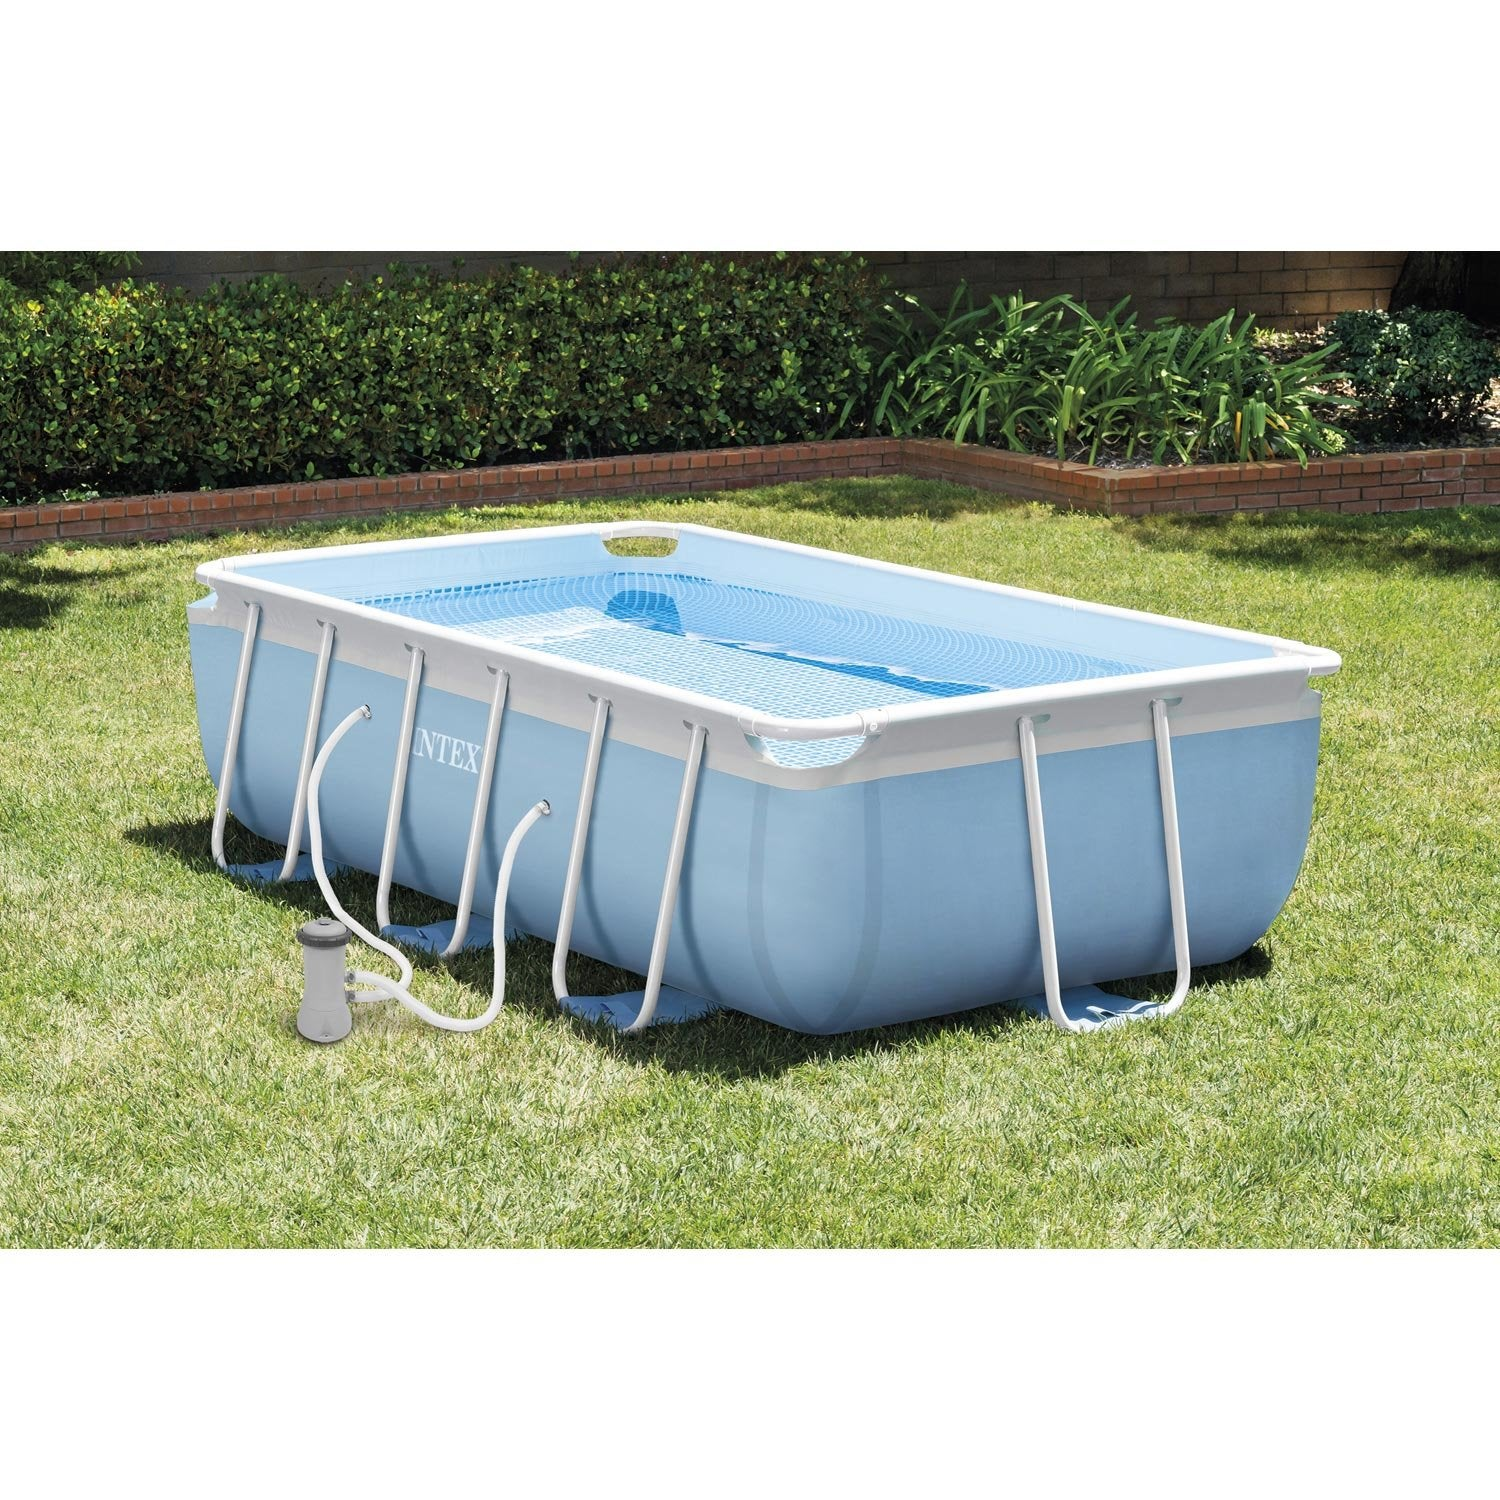 Piscine hors sol autoportante tubulaire intex l 3 4 x l 2 for Liner pour piscine enterree rectangulaire